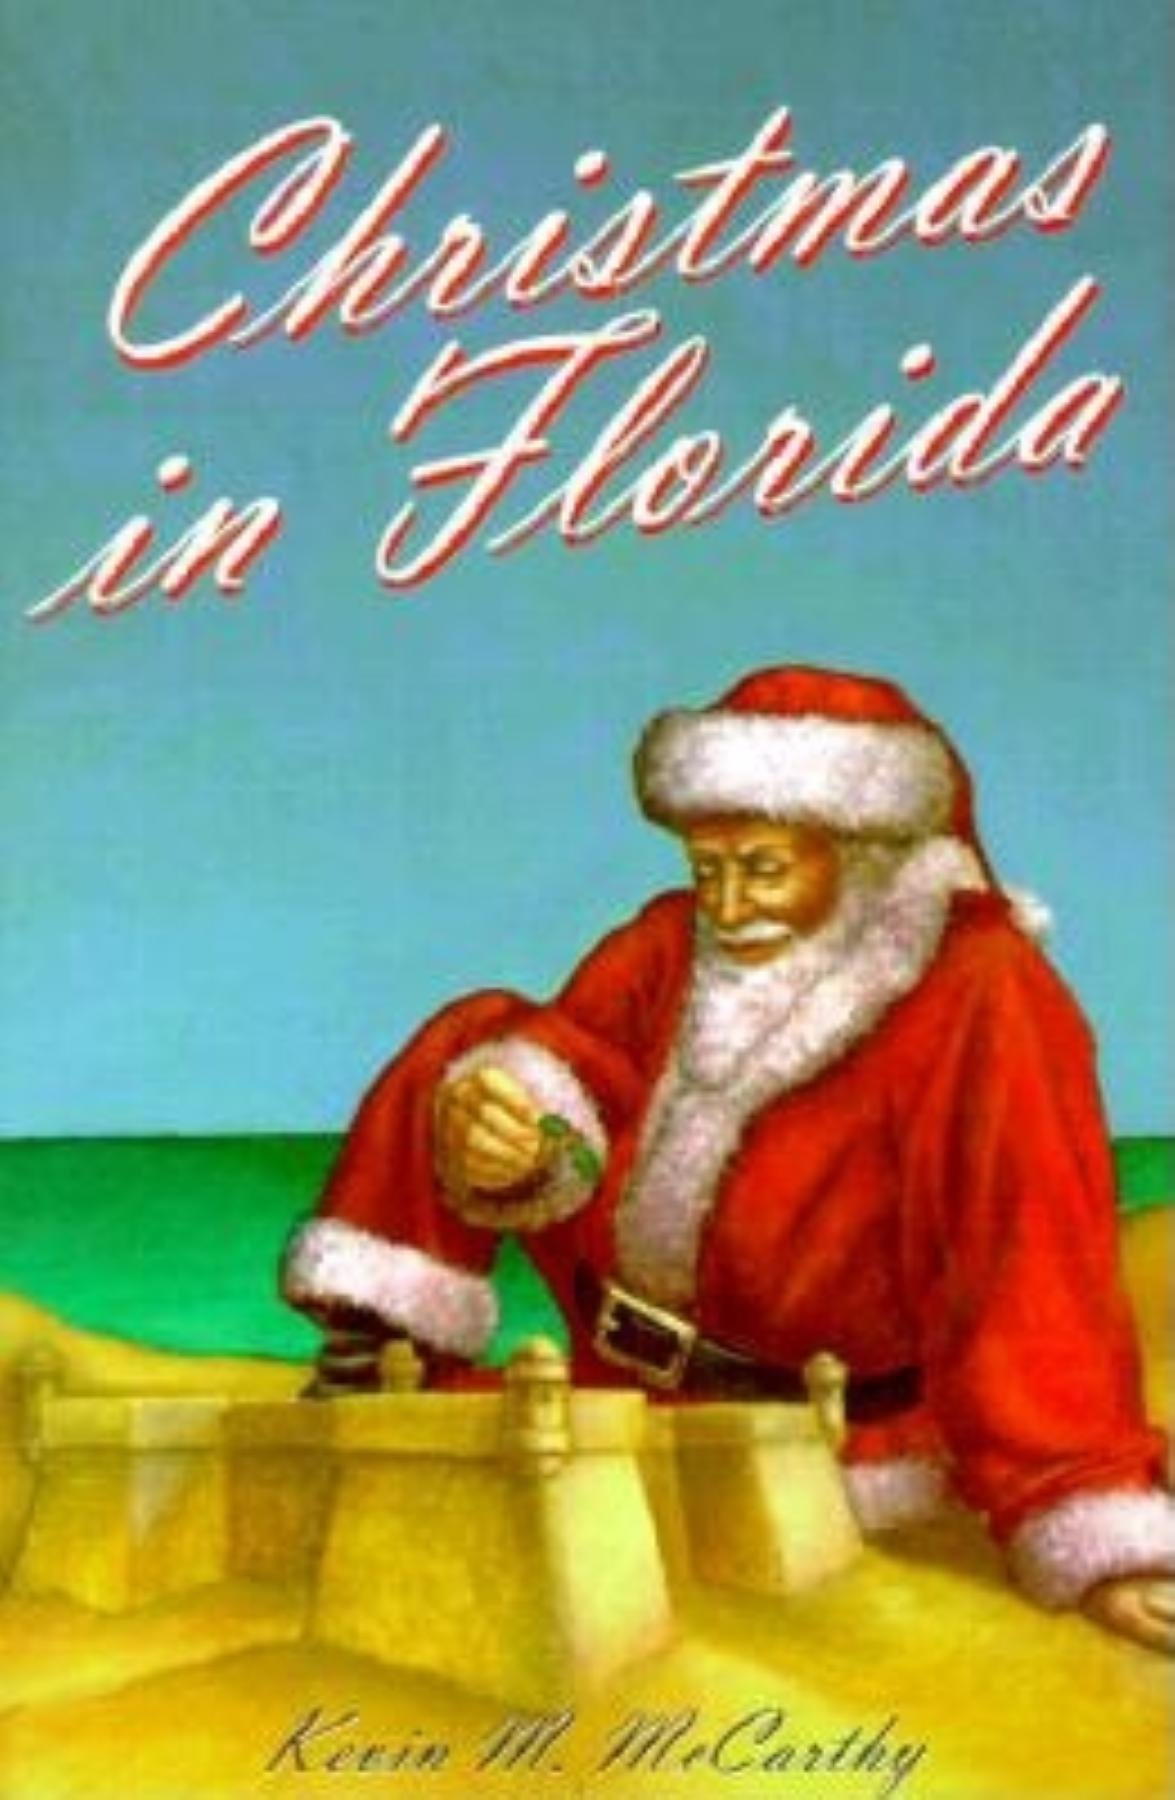 Christmas In Florida Images.Christmas In Florida Kevin M Mccarthy 9781561642083